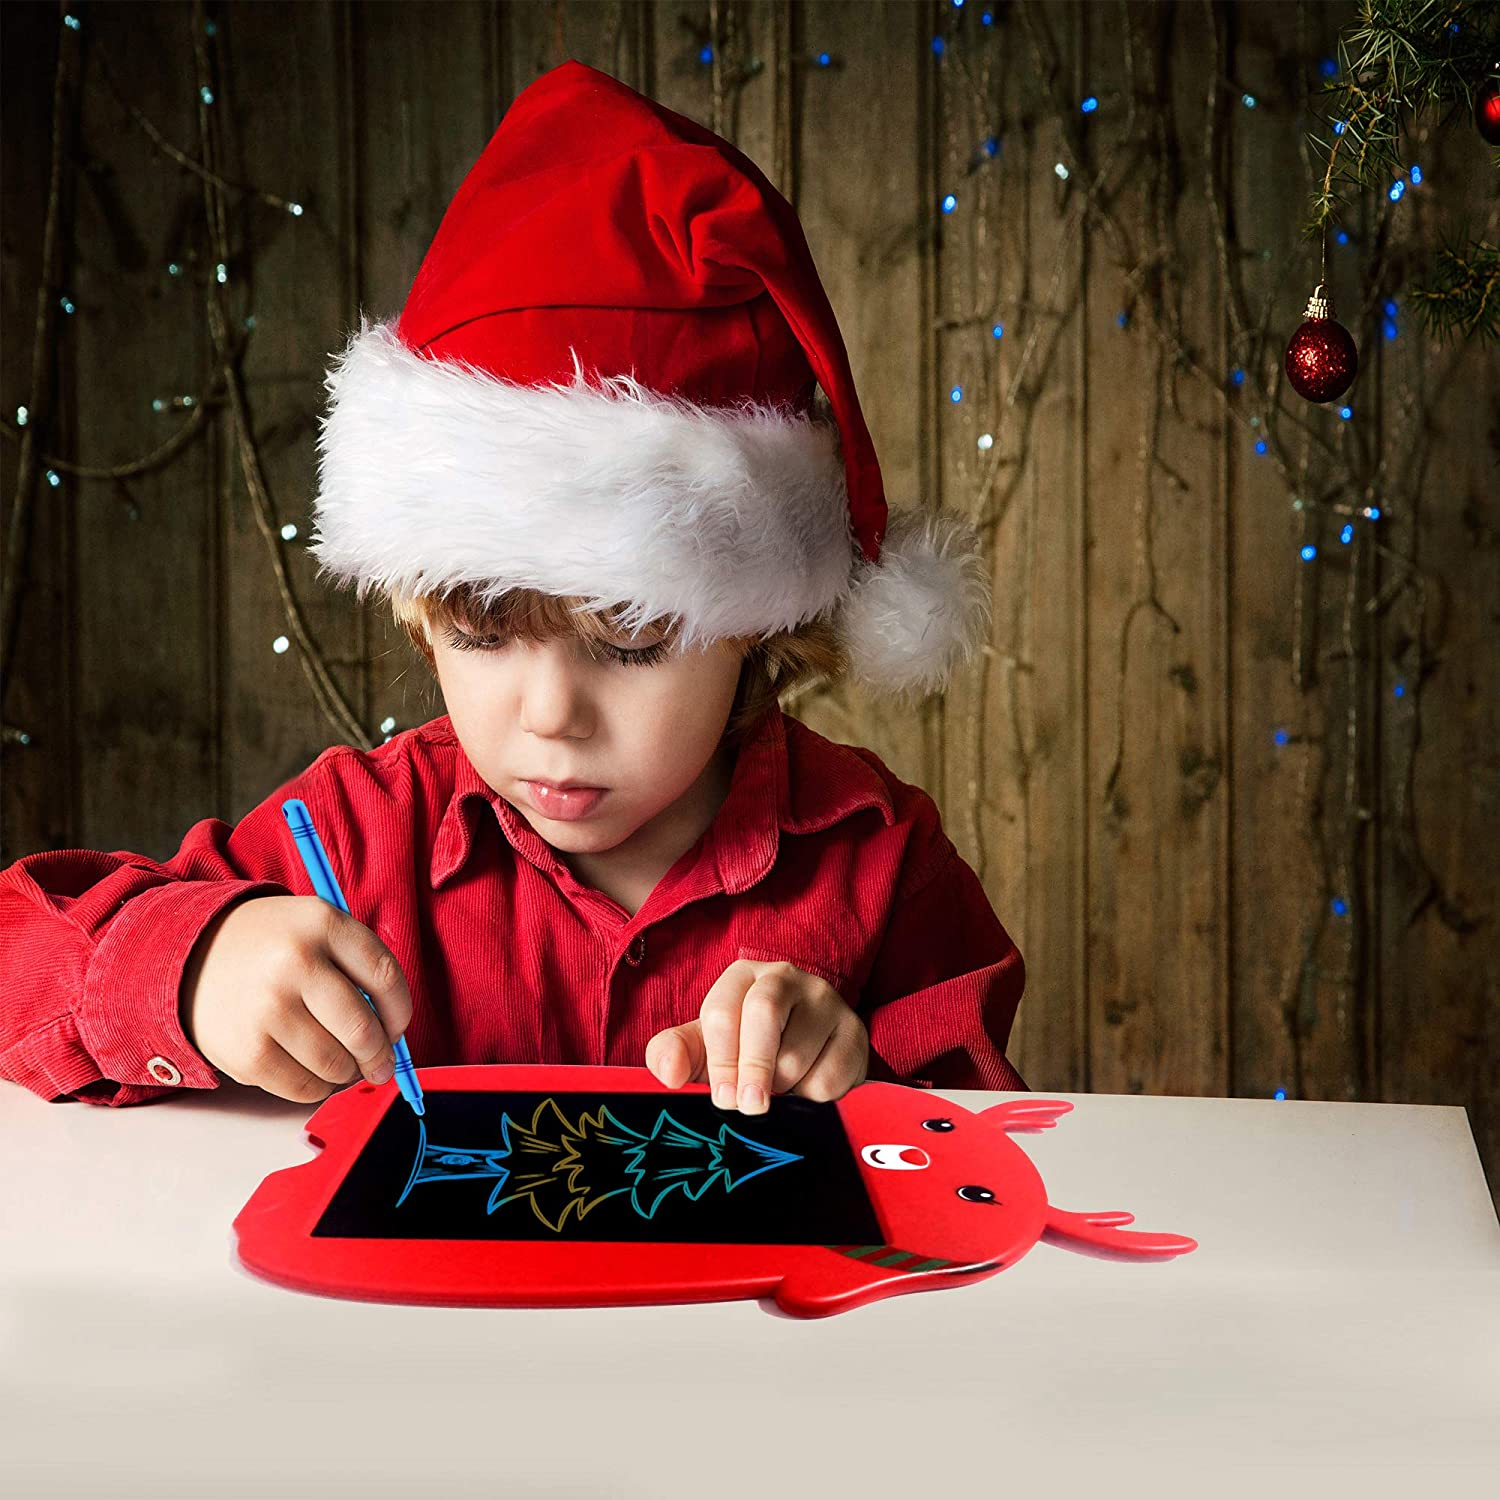 Red-Mc Erase Button Lock Included mom/&myaboys LCD Writing Tablet for Birthday Gift,Kids Toy 8.5 Inch Colorful LCD Writing Tablet Electronic Writings Pads Drawing Gifts for Kids Office Blackboard